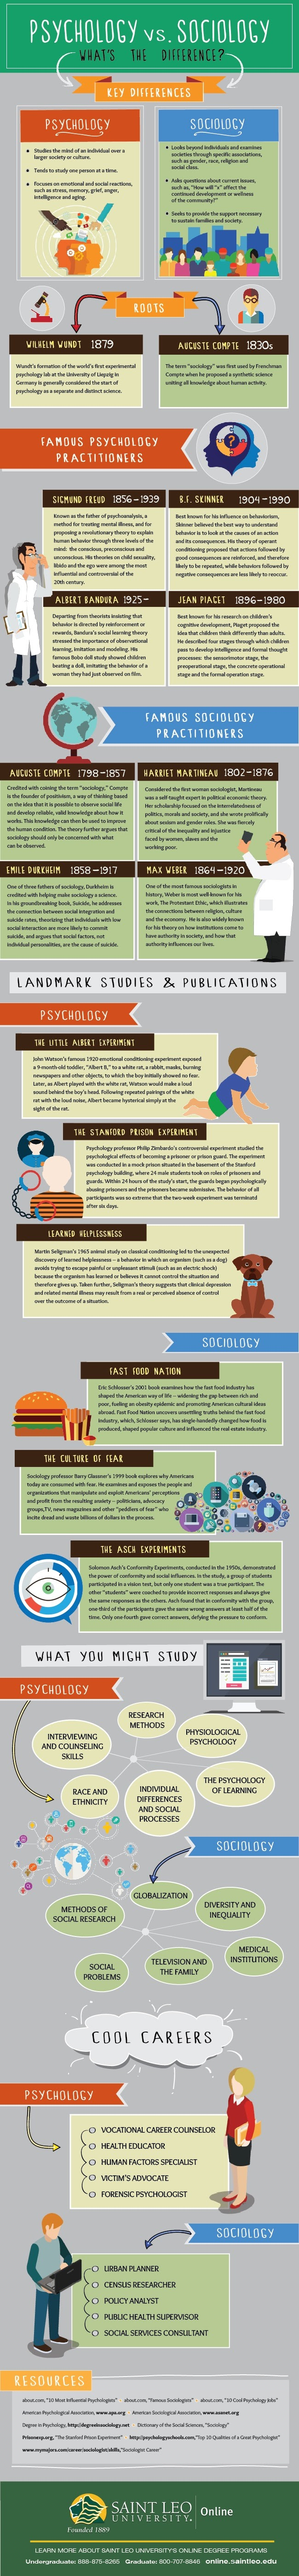 psychology-vs-sociology-whats-the-difference-infographic